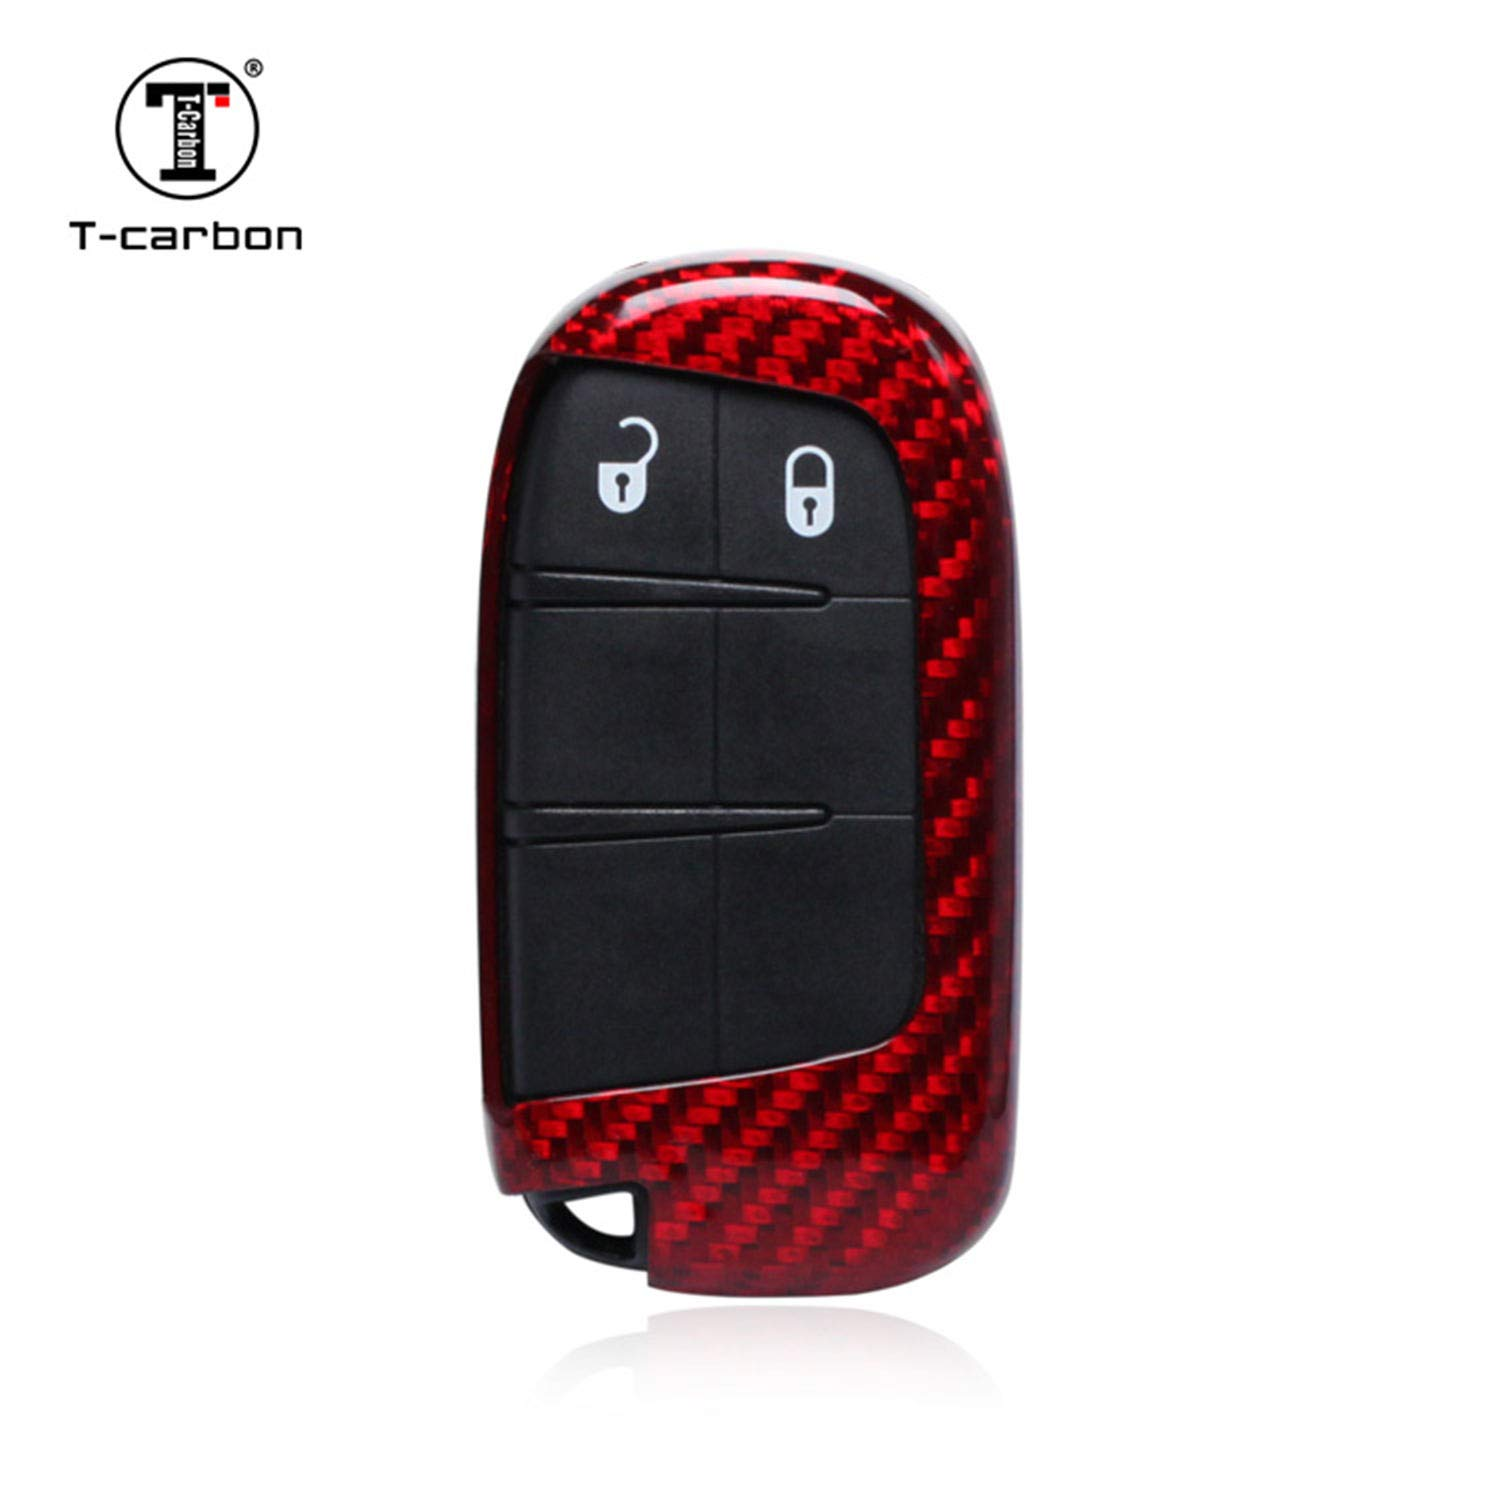 Carbon Fiber Key Fob Cover For Jeep Key Fob Remote Key, Fits Jeep Compass Jeep Grand Cherokee Jeep Renegade Smart Keyless Start Stop Engine Car Key, Light Weight Glossy Key Fob Protection Case - Black MissBlue